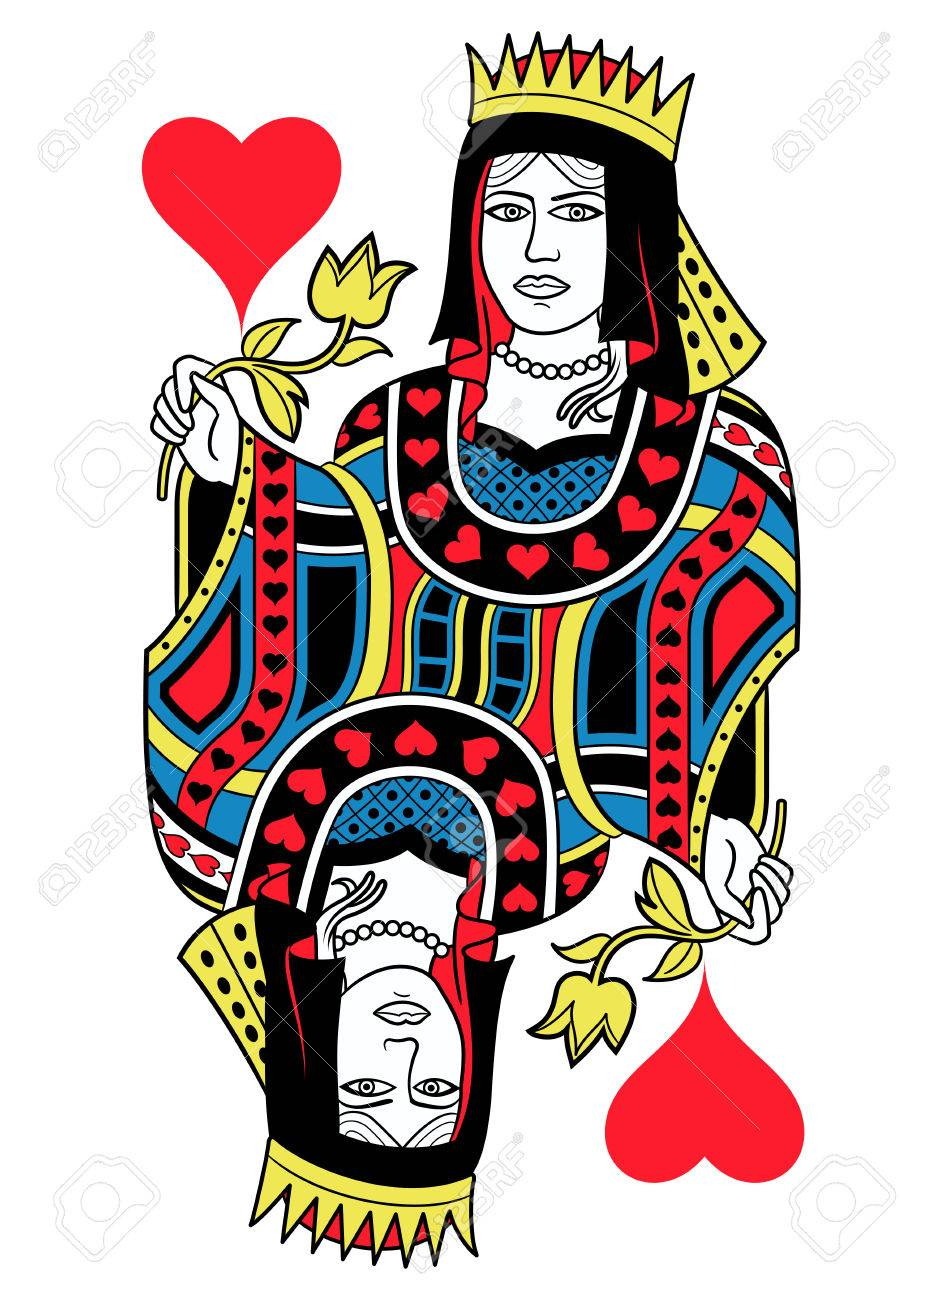 Queen Of Hearts Without Card Frame Design Inspired By French Tradition Stock Vector